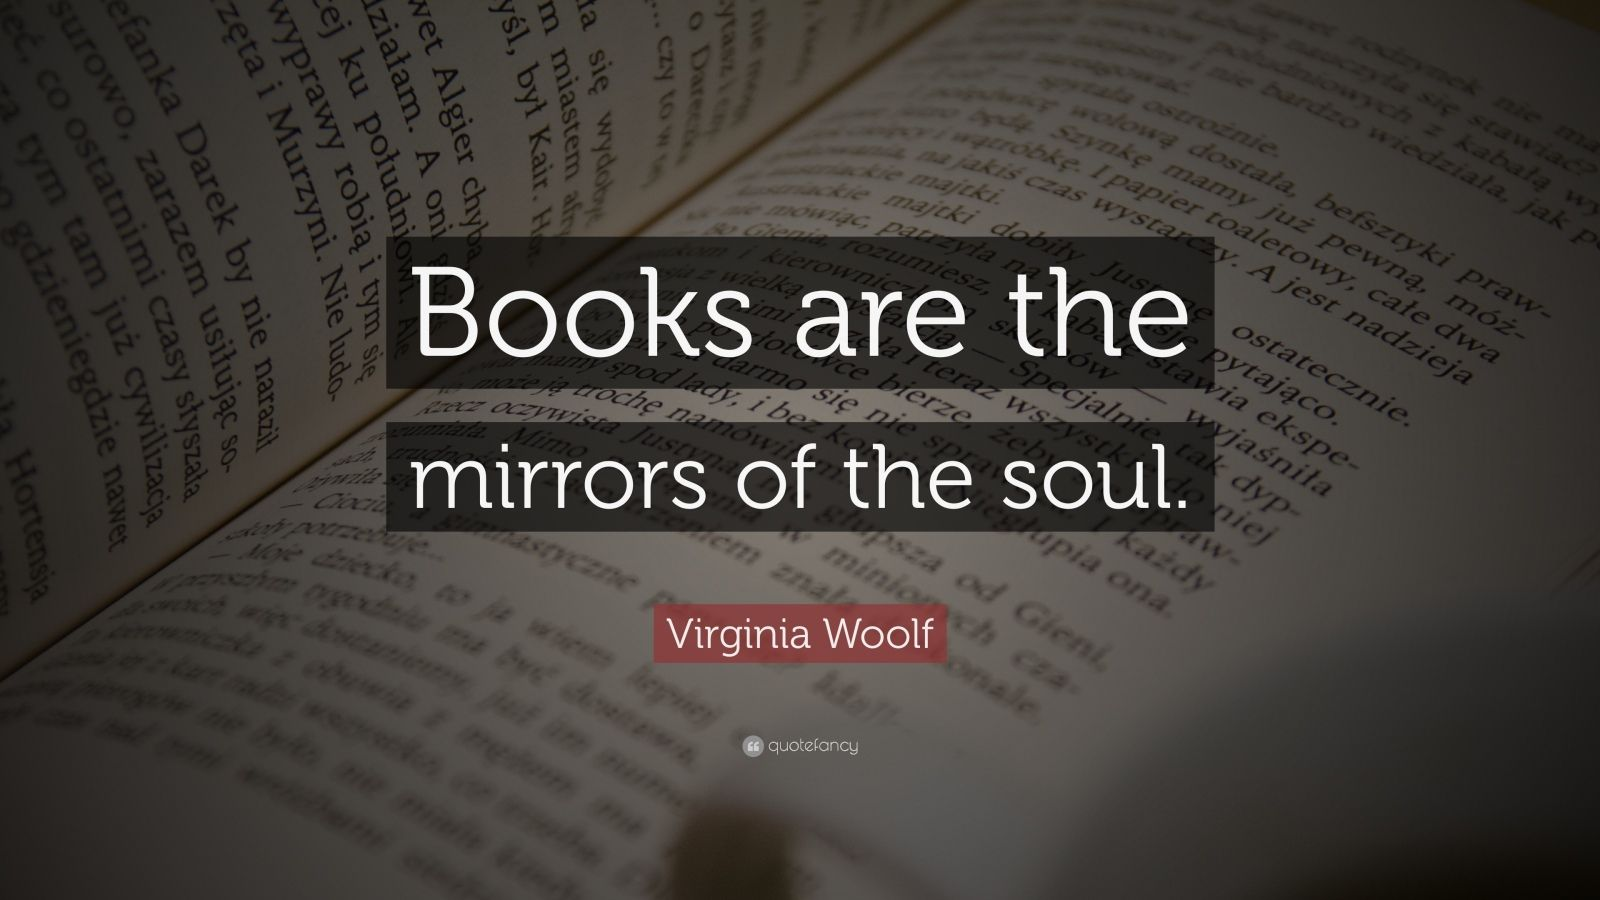 the life and works of virginia woolf Dalloway was written by virginia woolf in 1925, and closely relates to her own life woolf was born on january 25, 1882 into an upper-class family at the age of 13, woolf's mother died, which was the beginning of her bouts with mental illness.